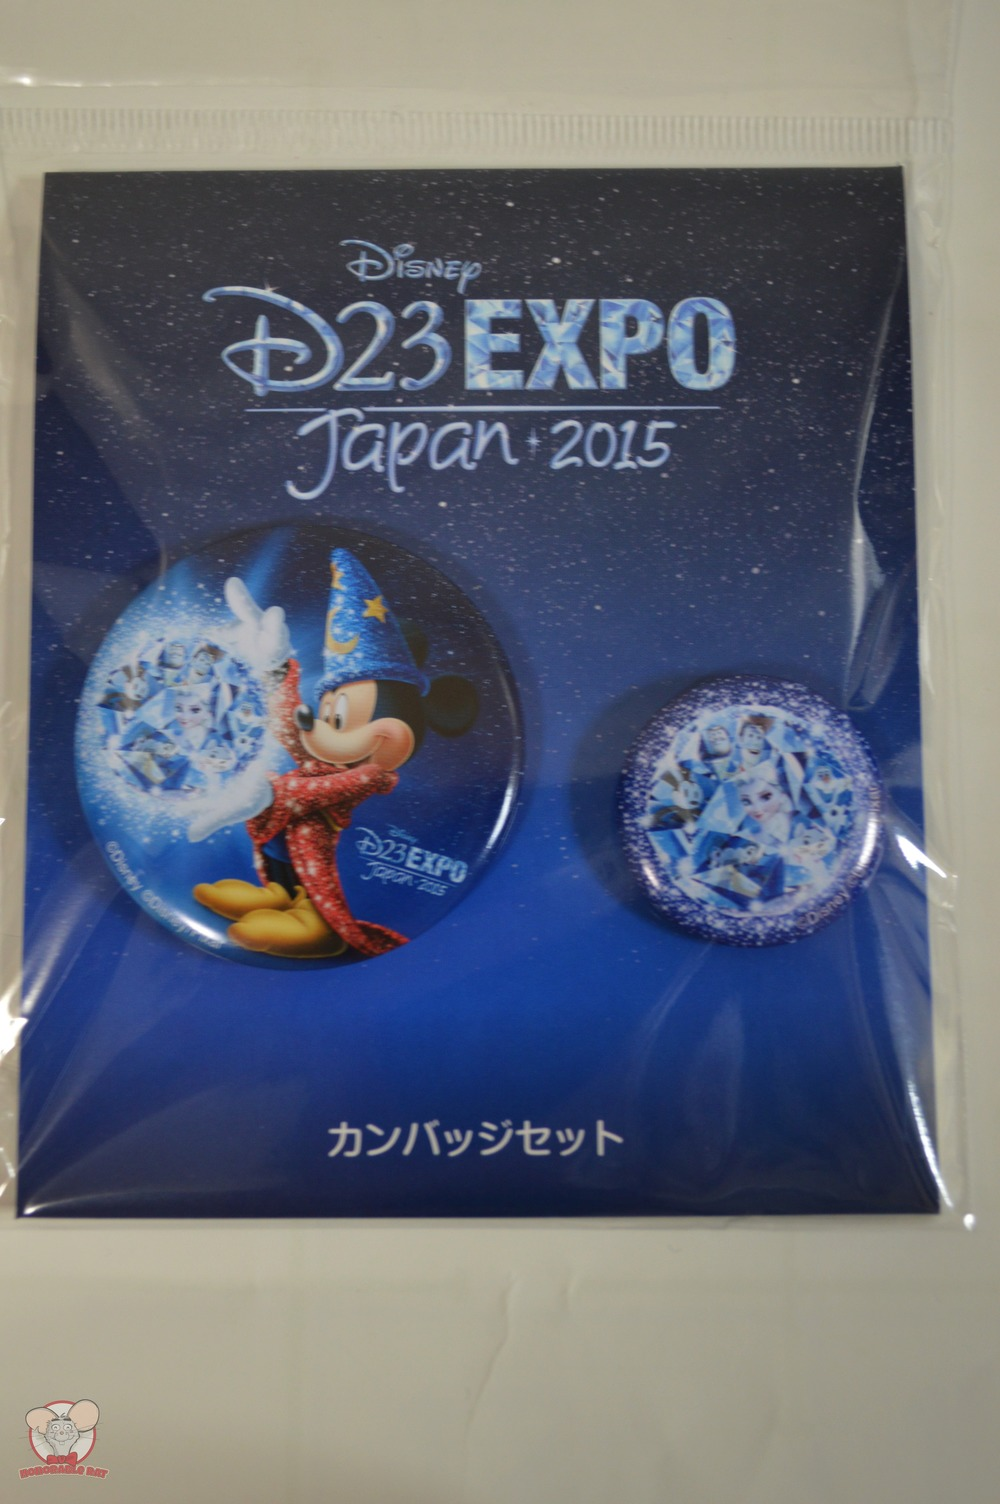 D23 Expo Japan 2015 Set of 2 Button Badges